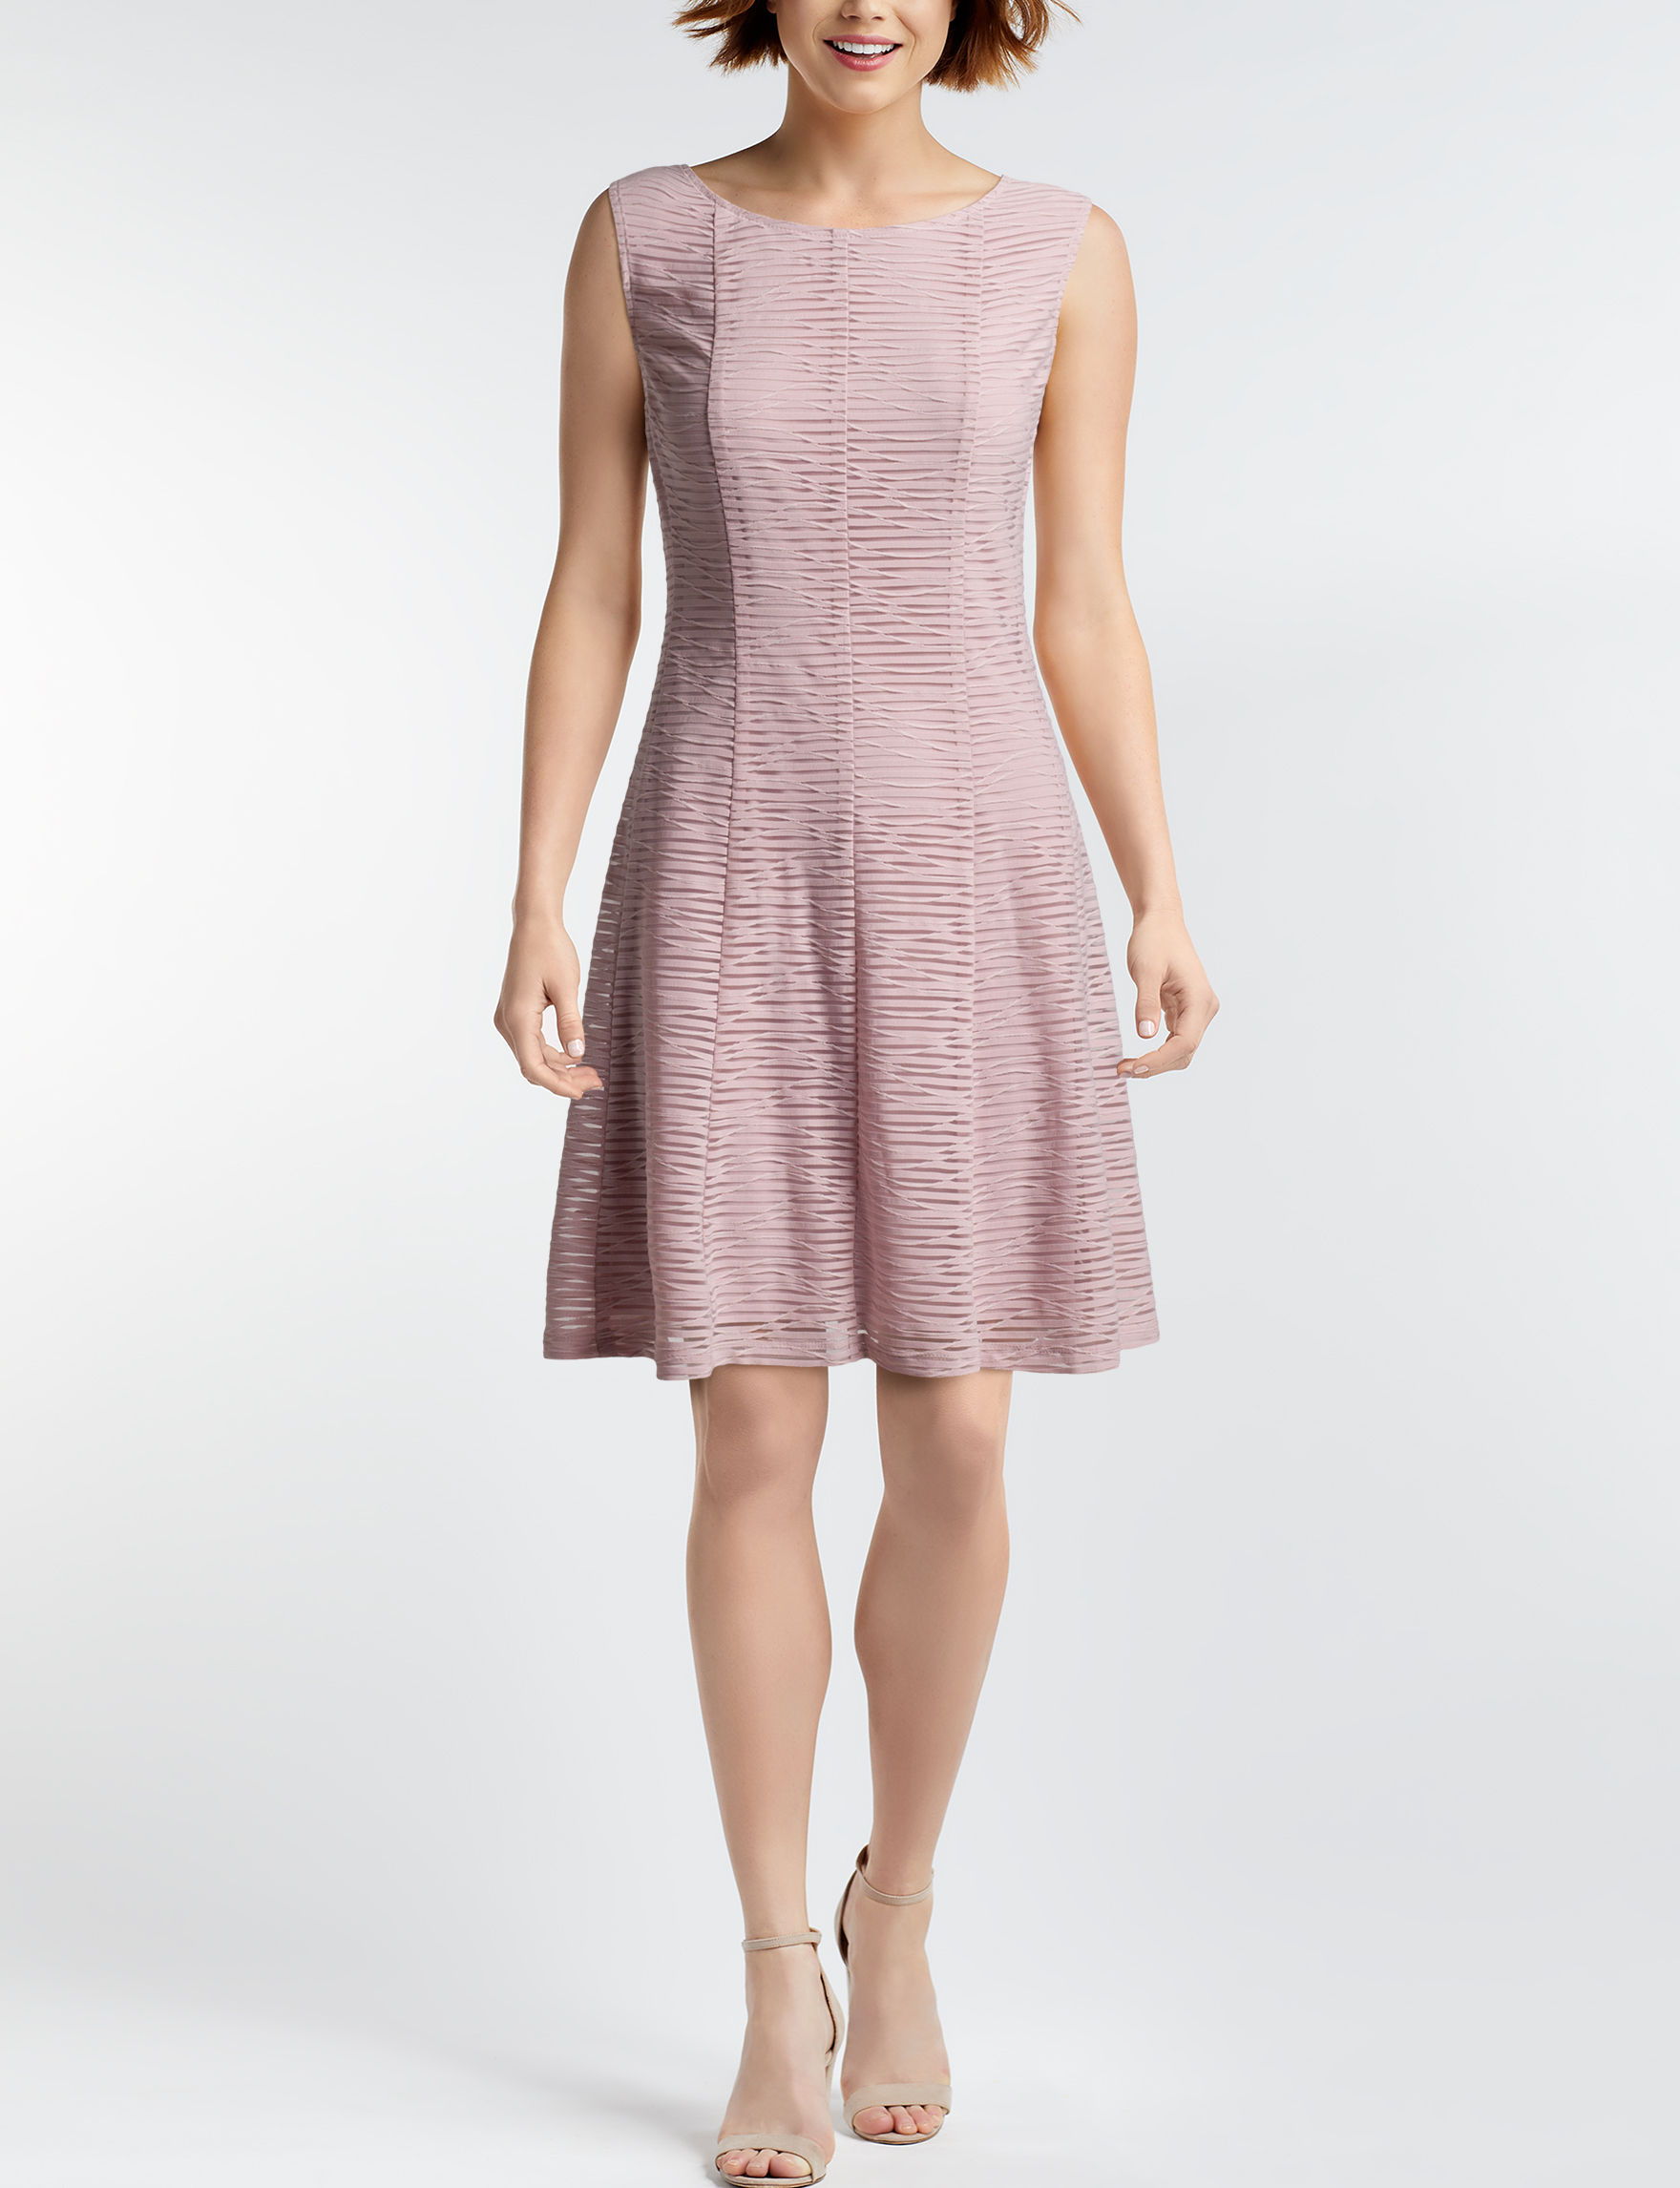 Connected Blush Everyday & Casual A-line Dresses